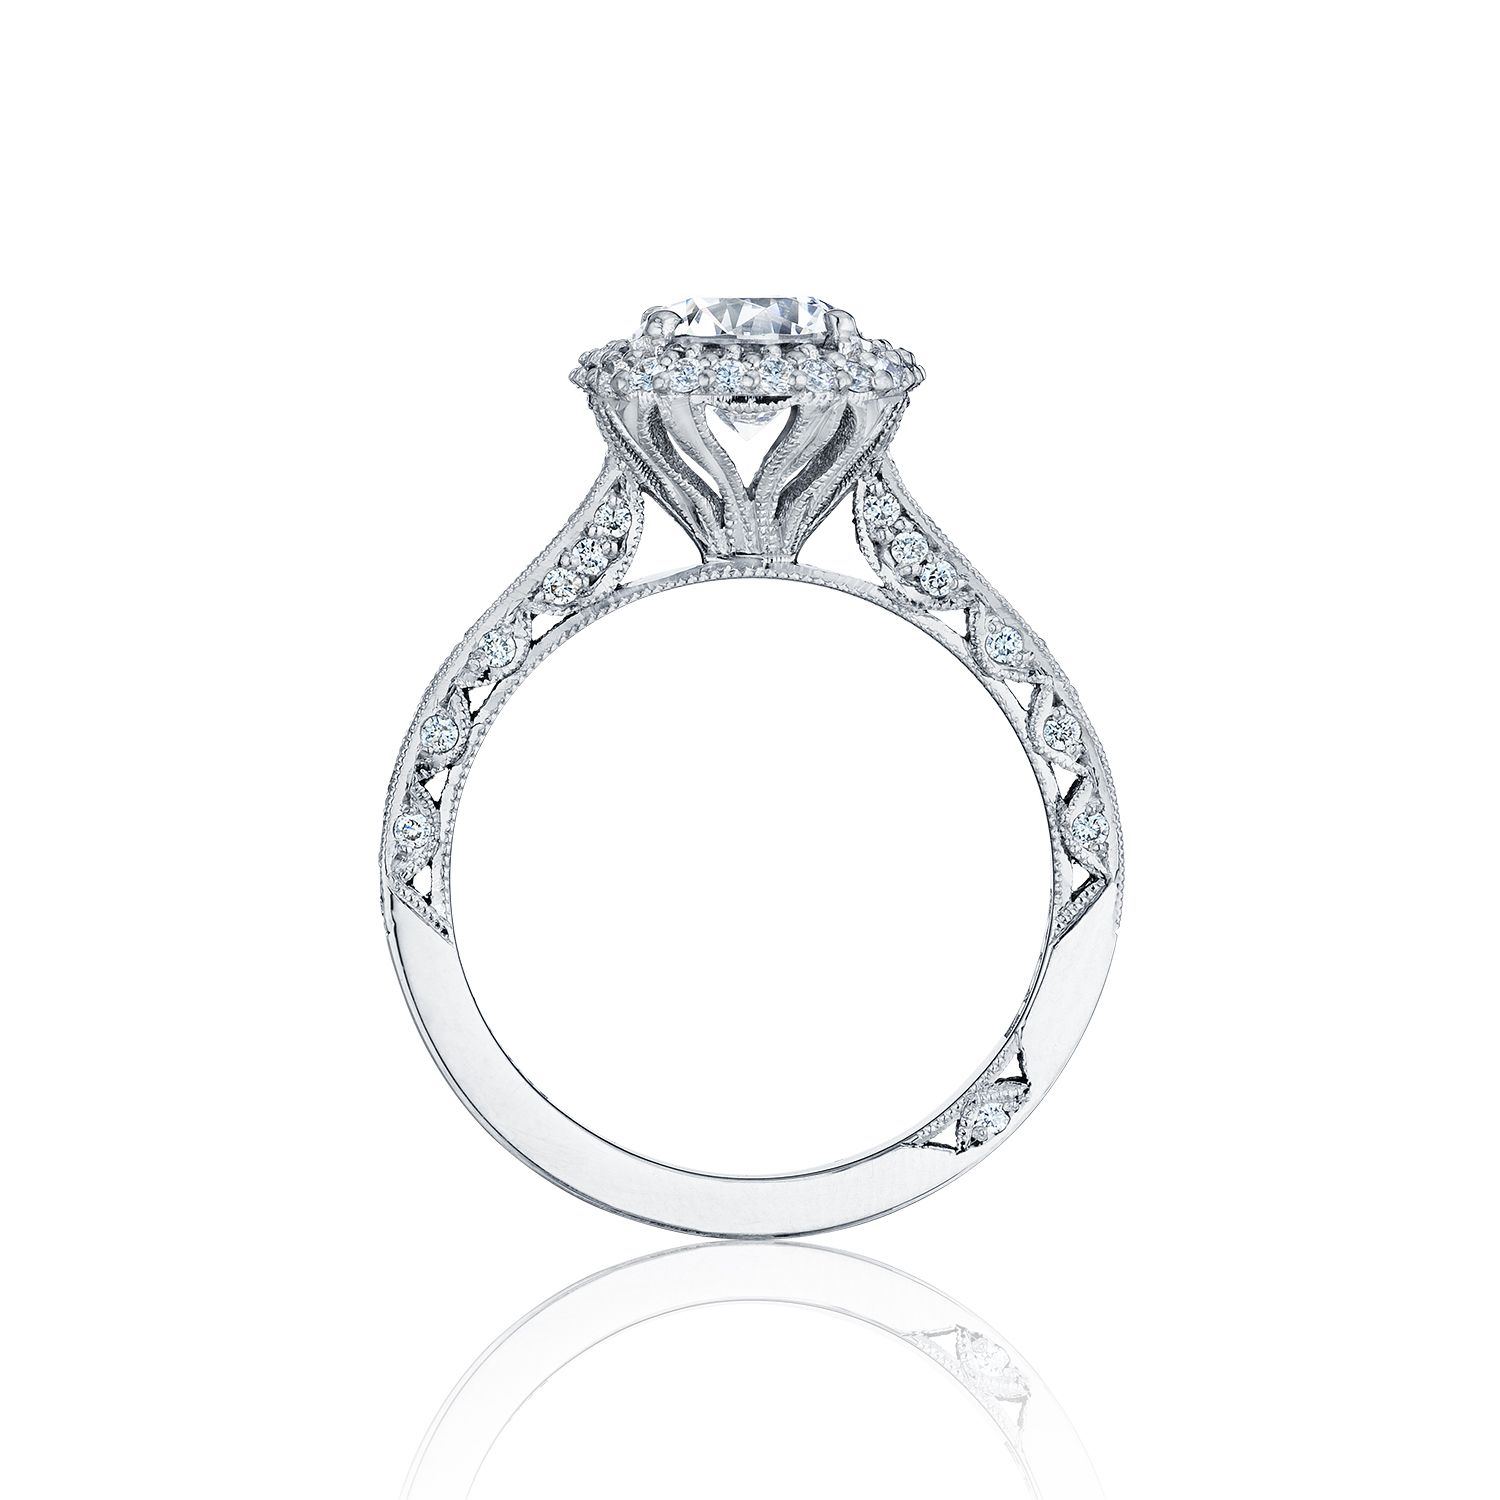 essentially engagement ring known the jewellery diamond as elegant triangle settings trillion also wedding a smxkqmg promise is